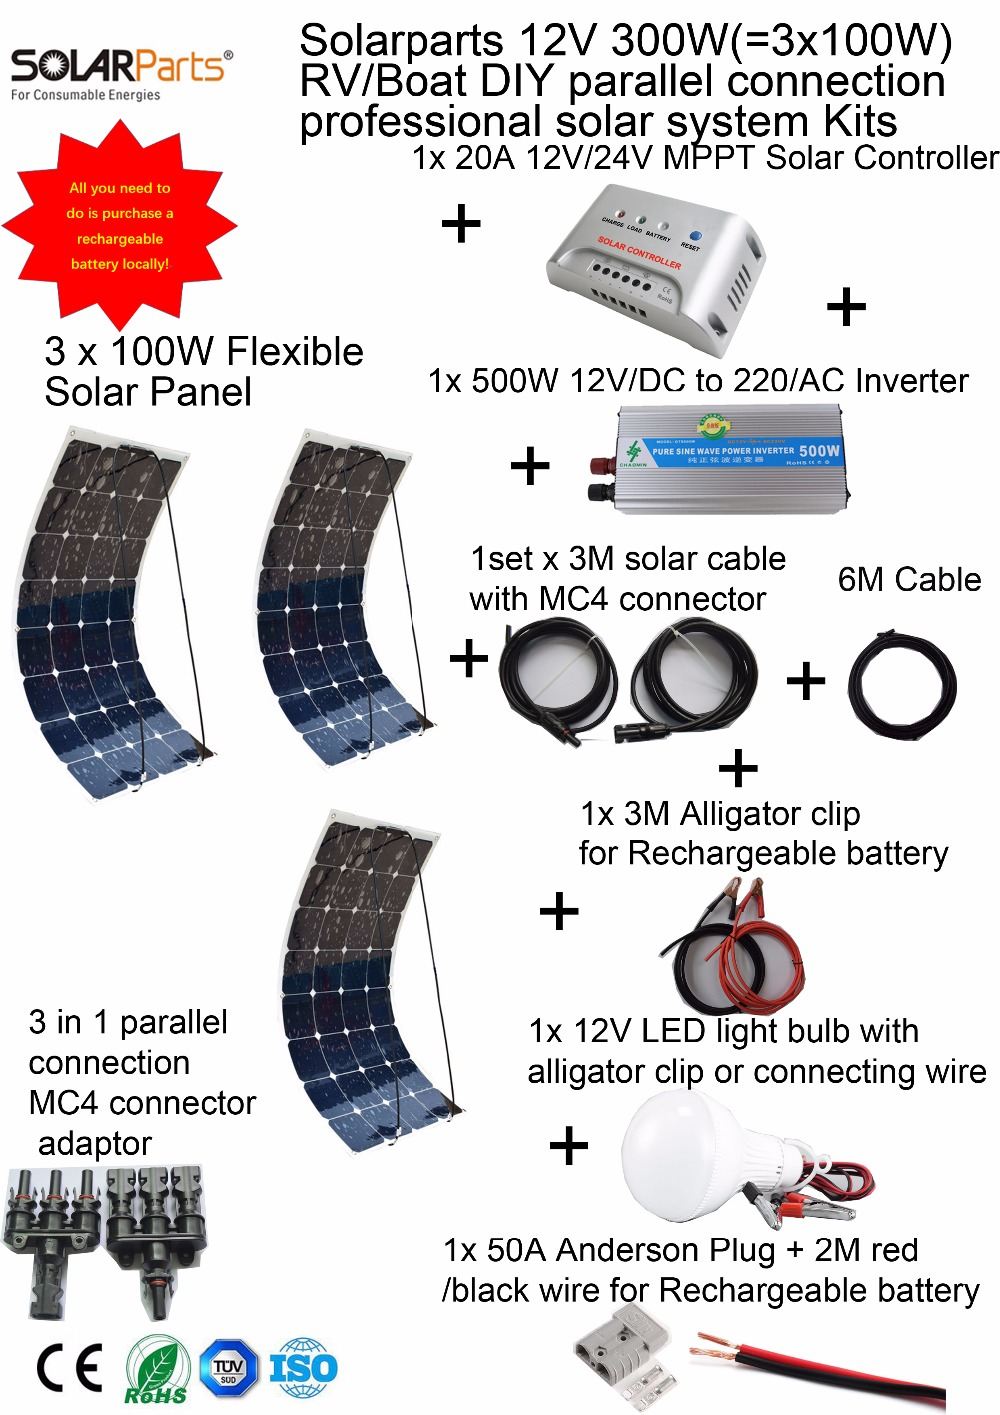 Solarparts 1x300W Professional DIY Boat Marine Kit Solar Home System 3x100W pvflexible solar panel MPPT controller